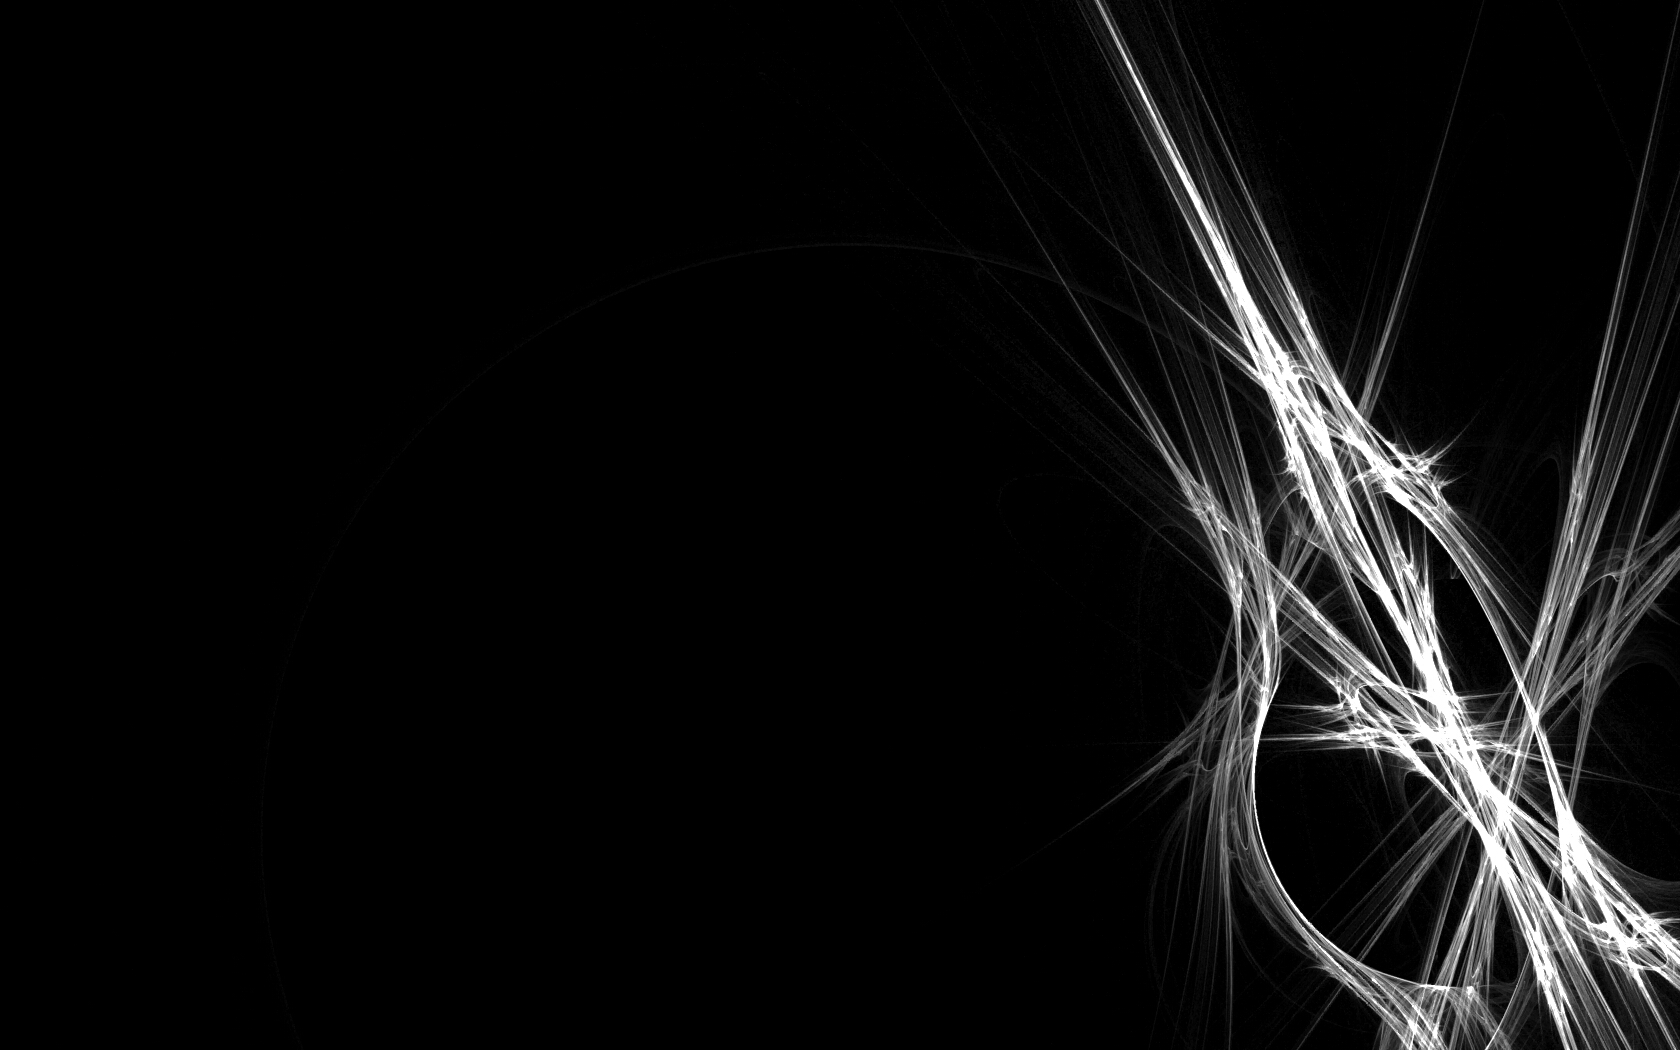 Black And White Background   PowerPoint Backgrounds for 1680x1050